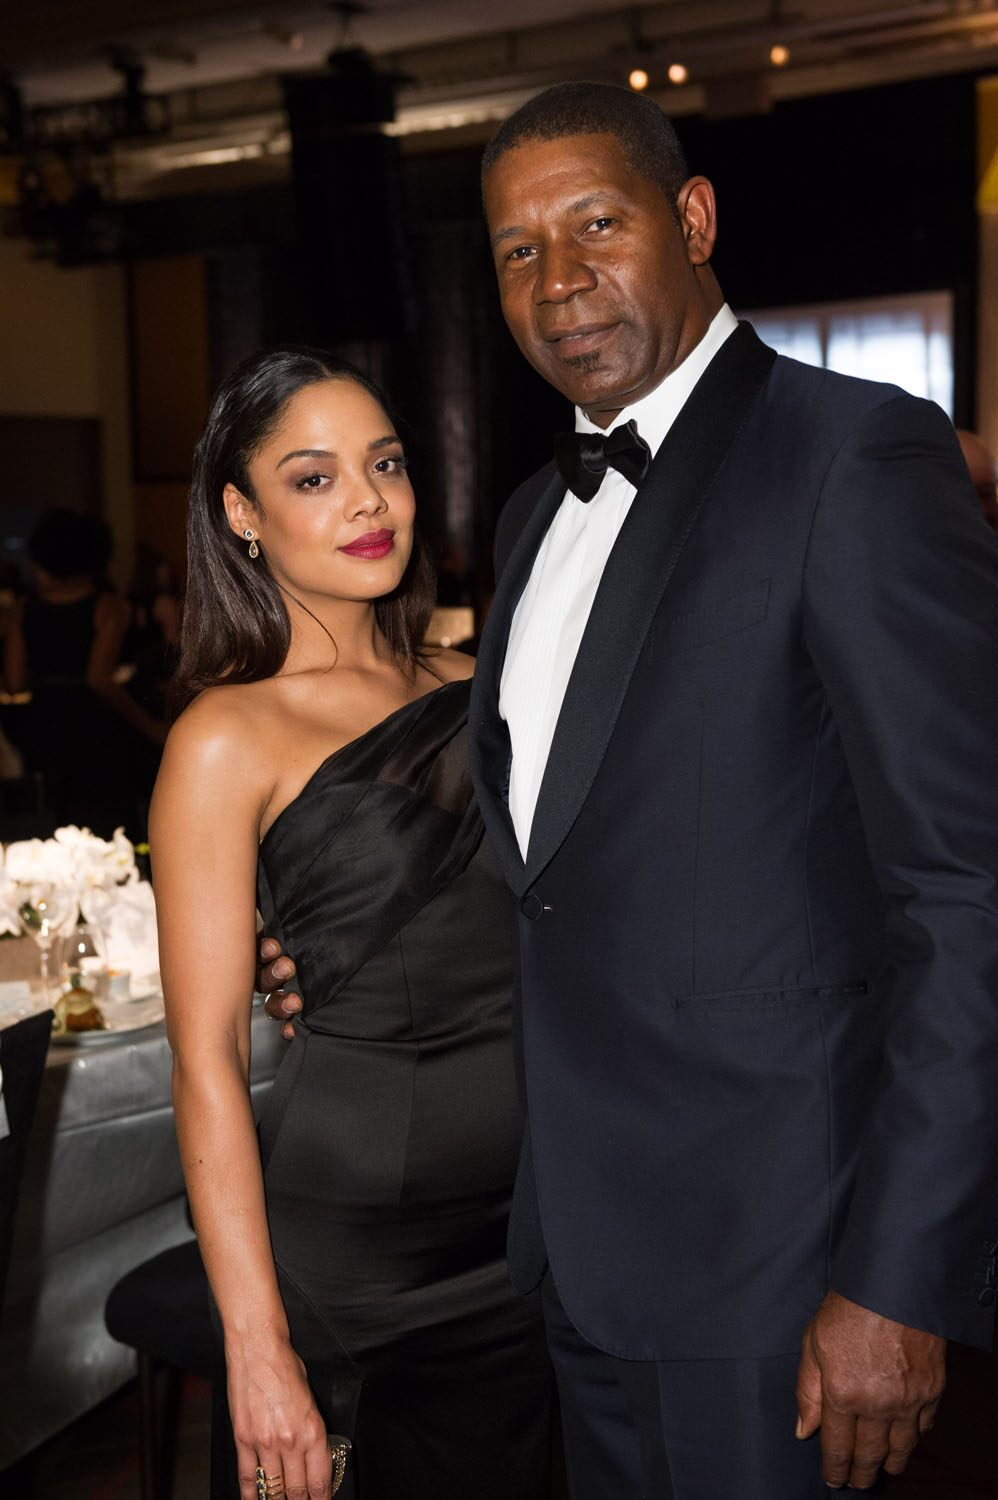 Tessa Thompson (left) and Dennis Haysbert at the 6th Annual Governors Awards